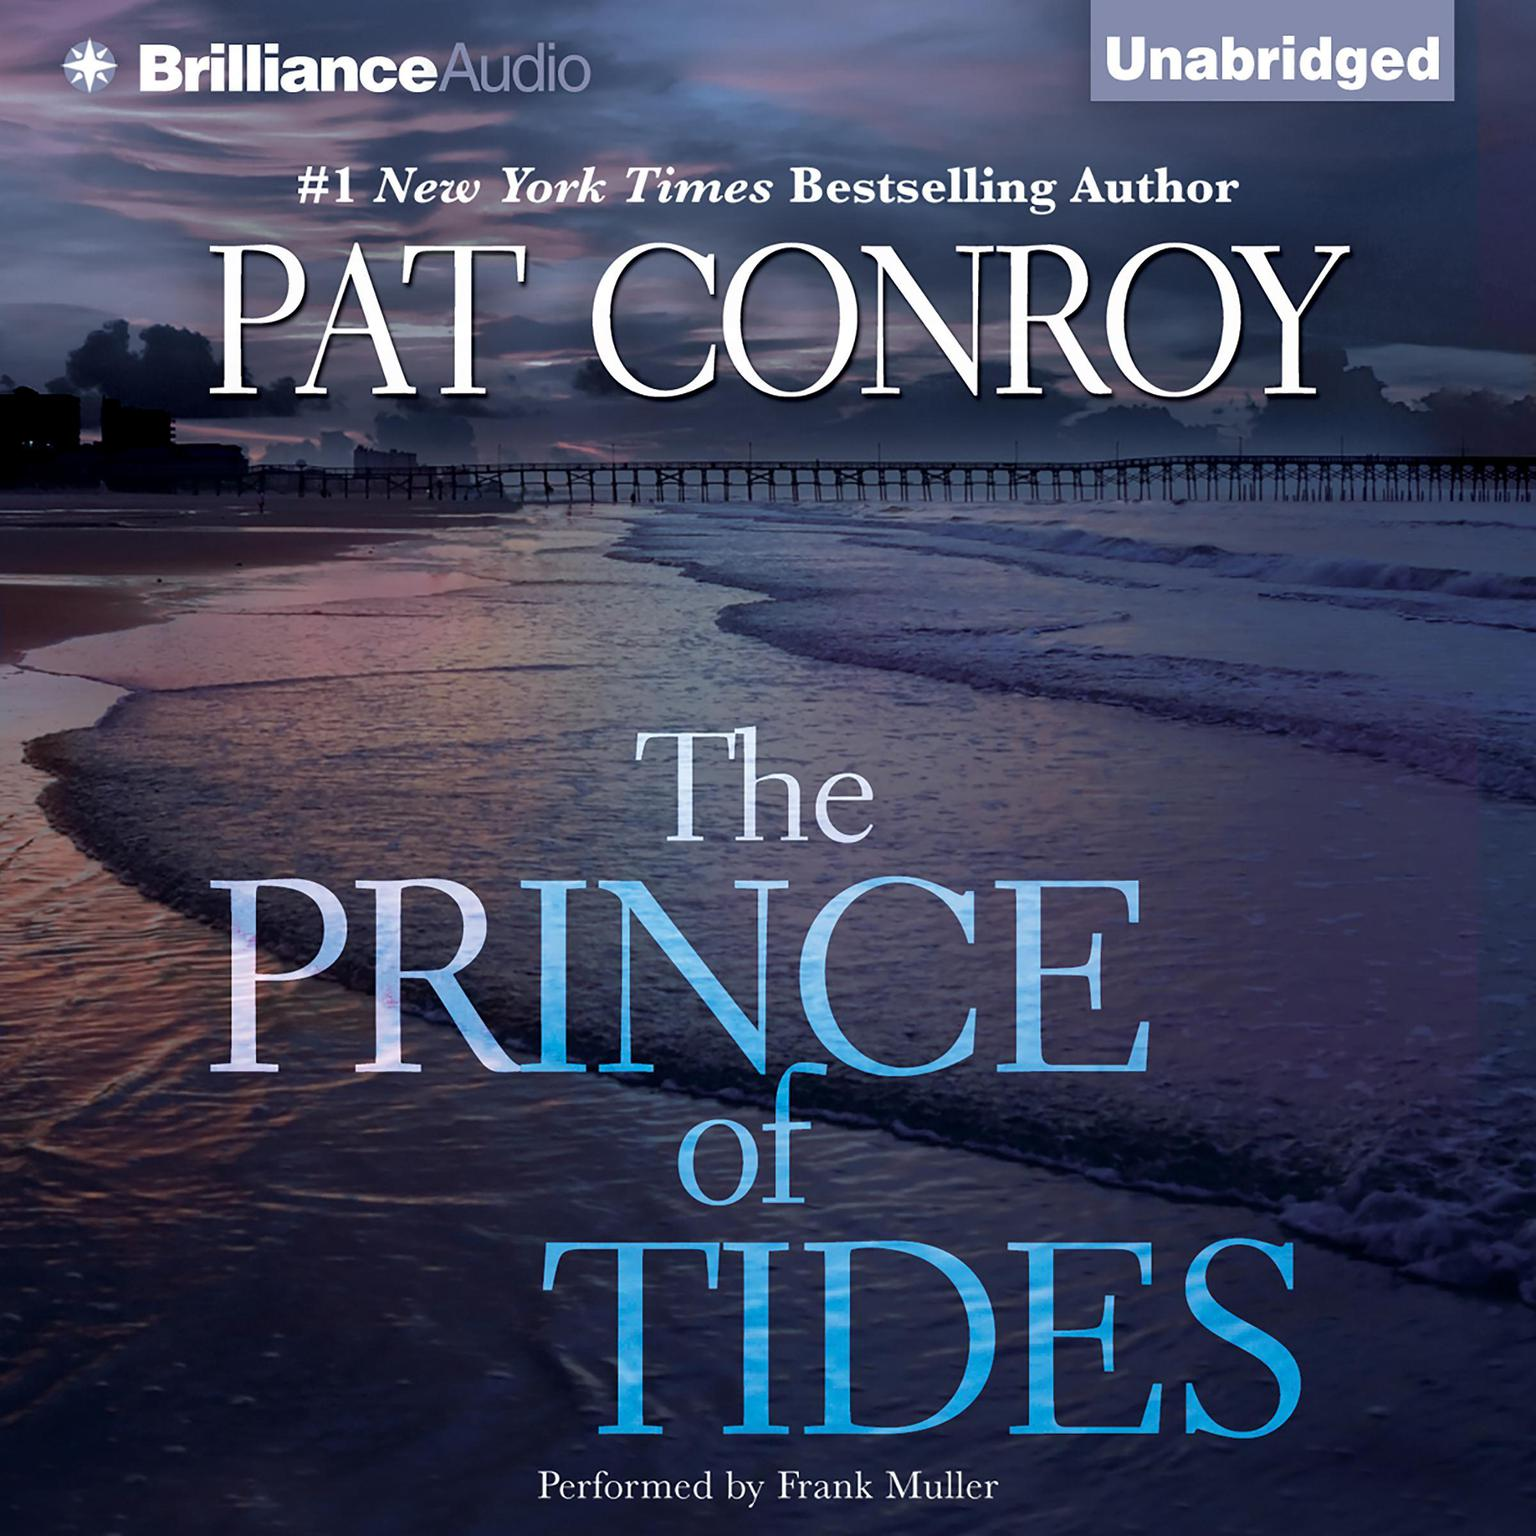 essays on the prince of tides Bestselling author of the prince of tides pat conroy dies aged 70 just  a  collection of essays that chronicled his lifelong passion for literature.